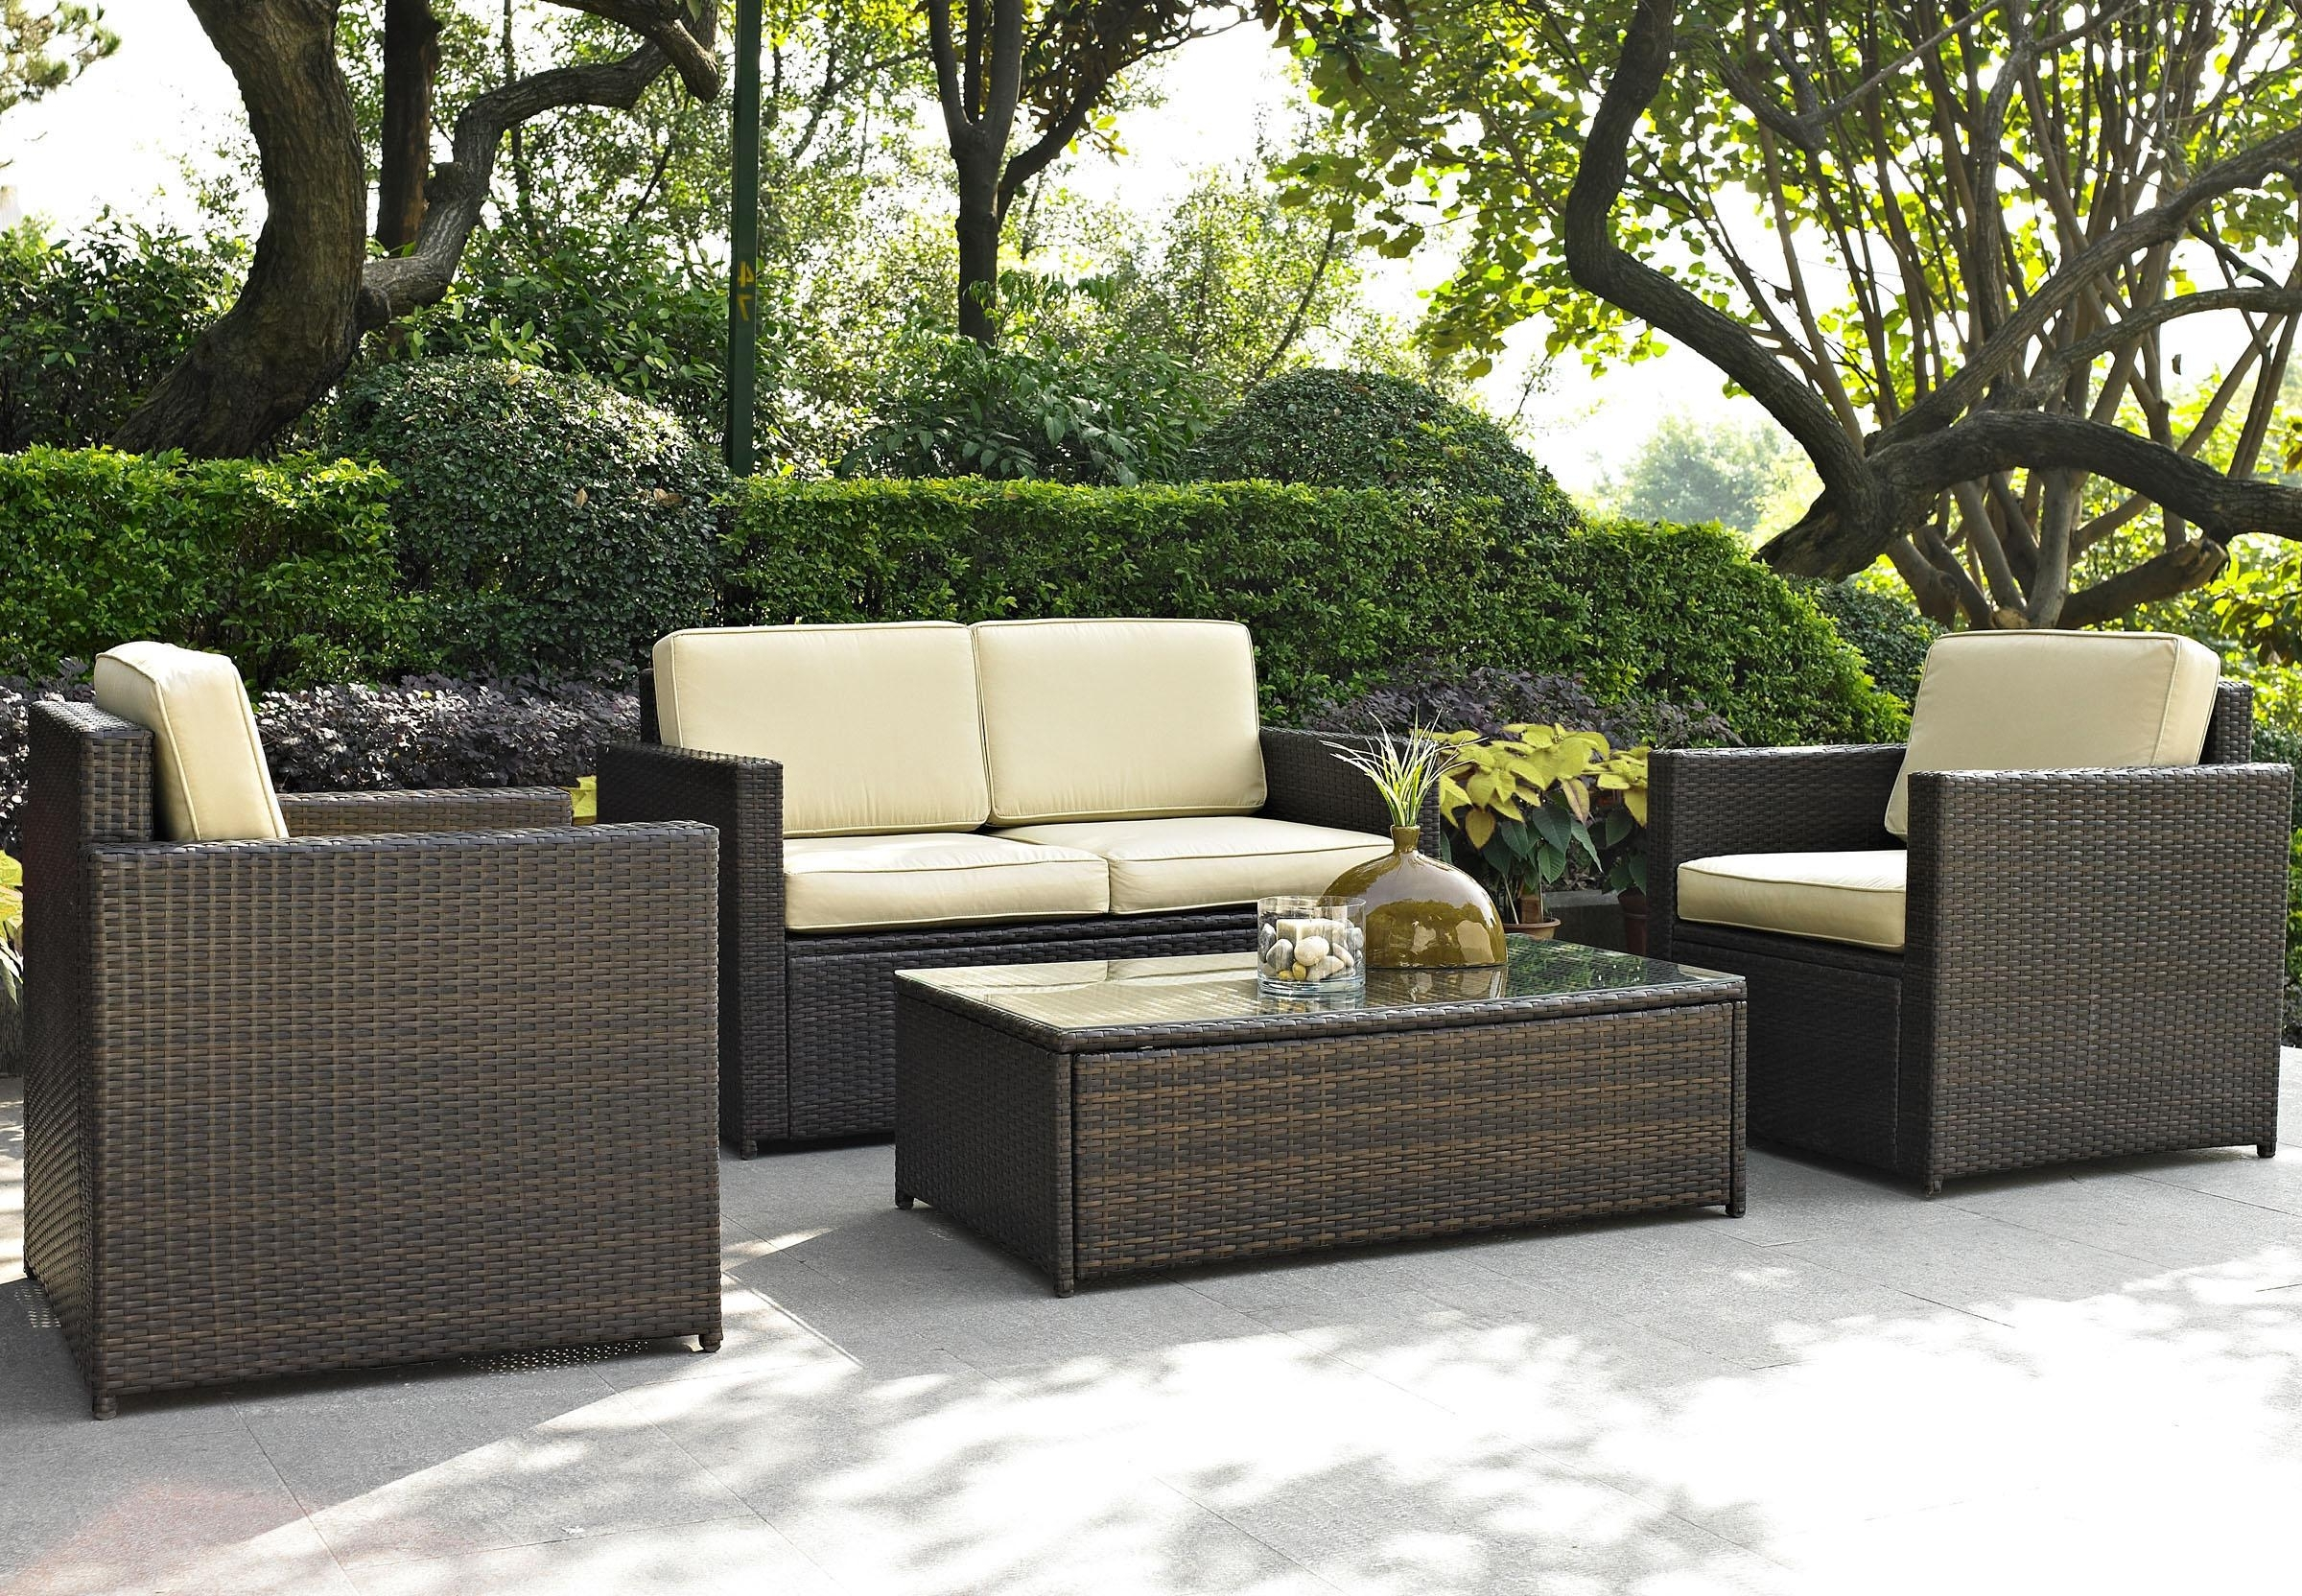 Furniture: Lovely Brown Wicker Chair Outdoor Furniture Design For Well Known Patio Conversation Sets At Walmart (View 8 of 15)